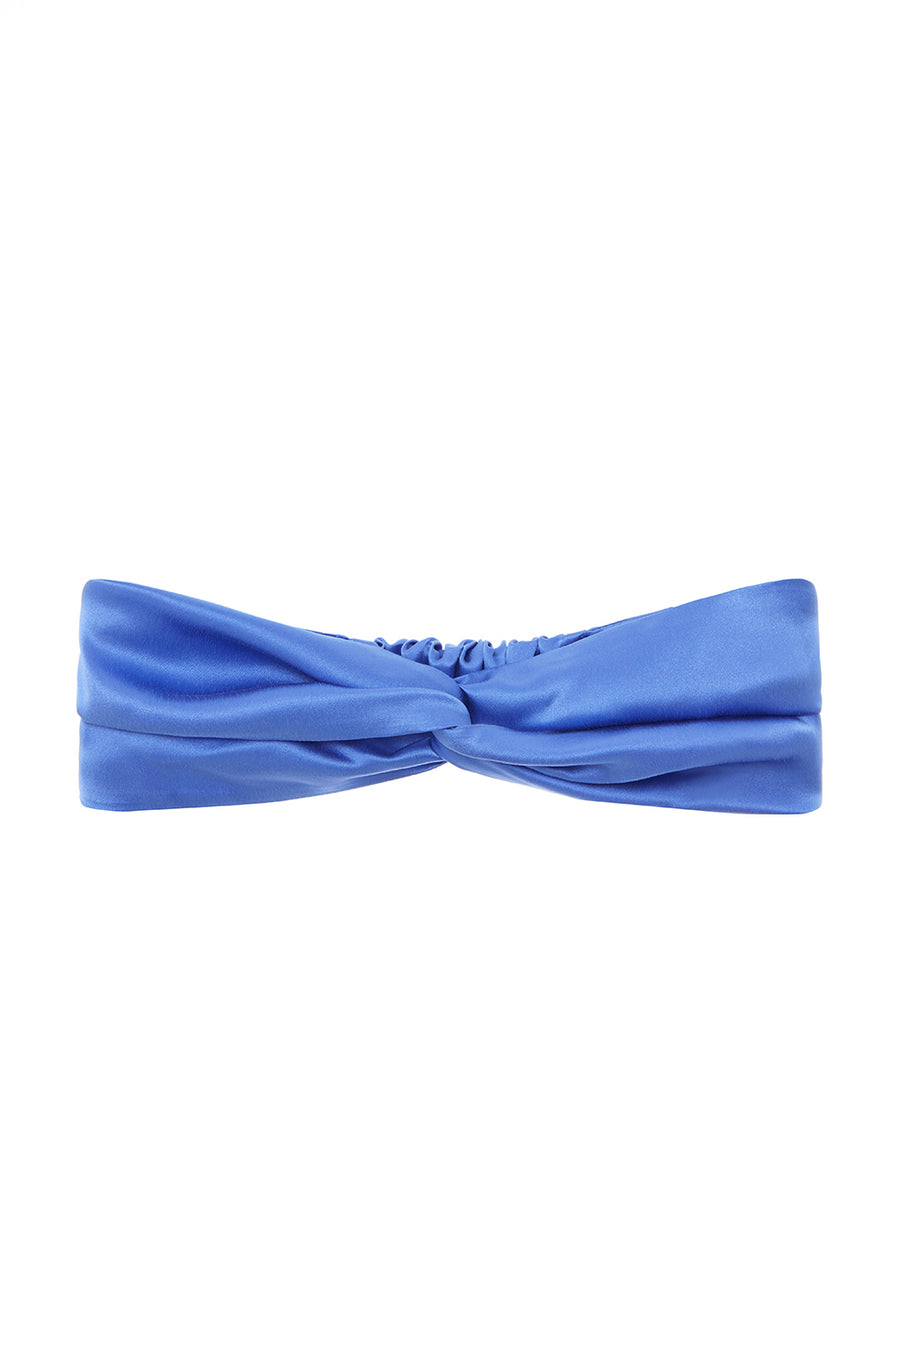 The Headband | Sapphire Blue Satin